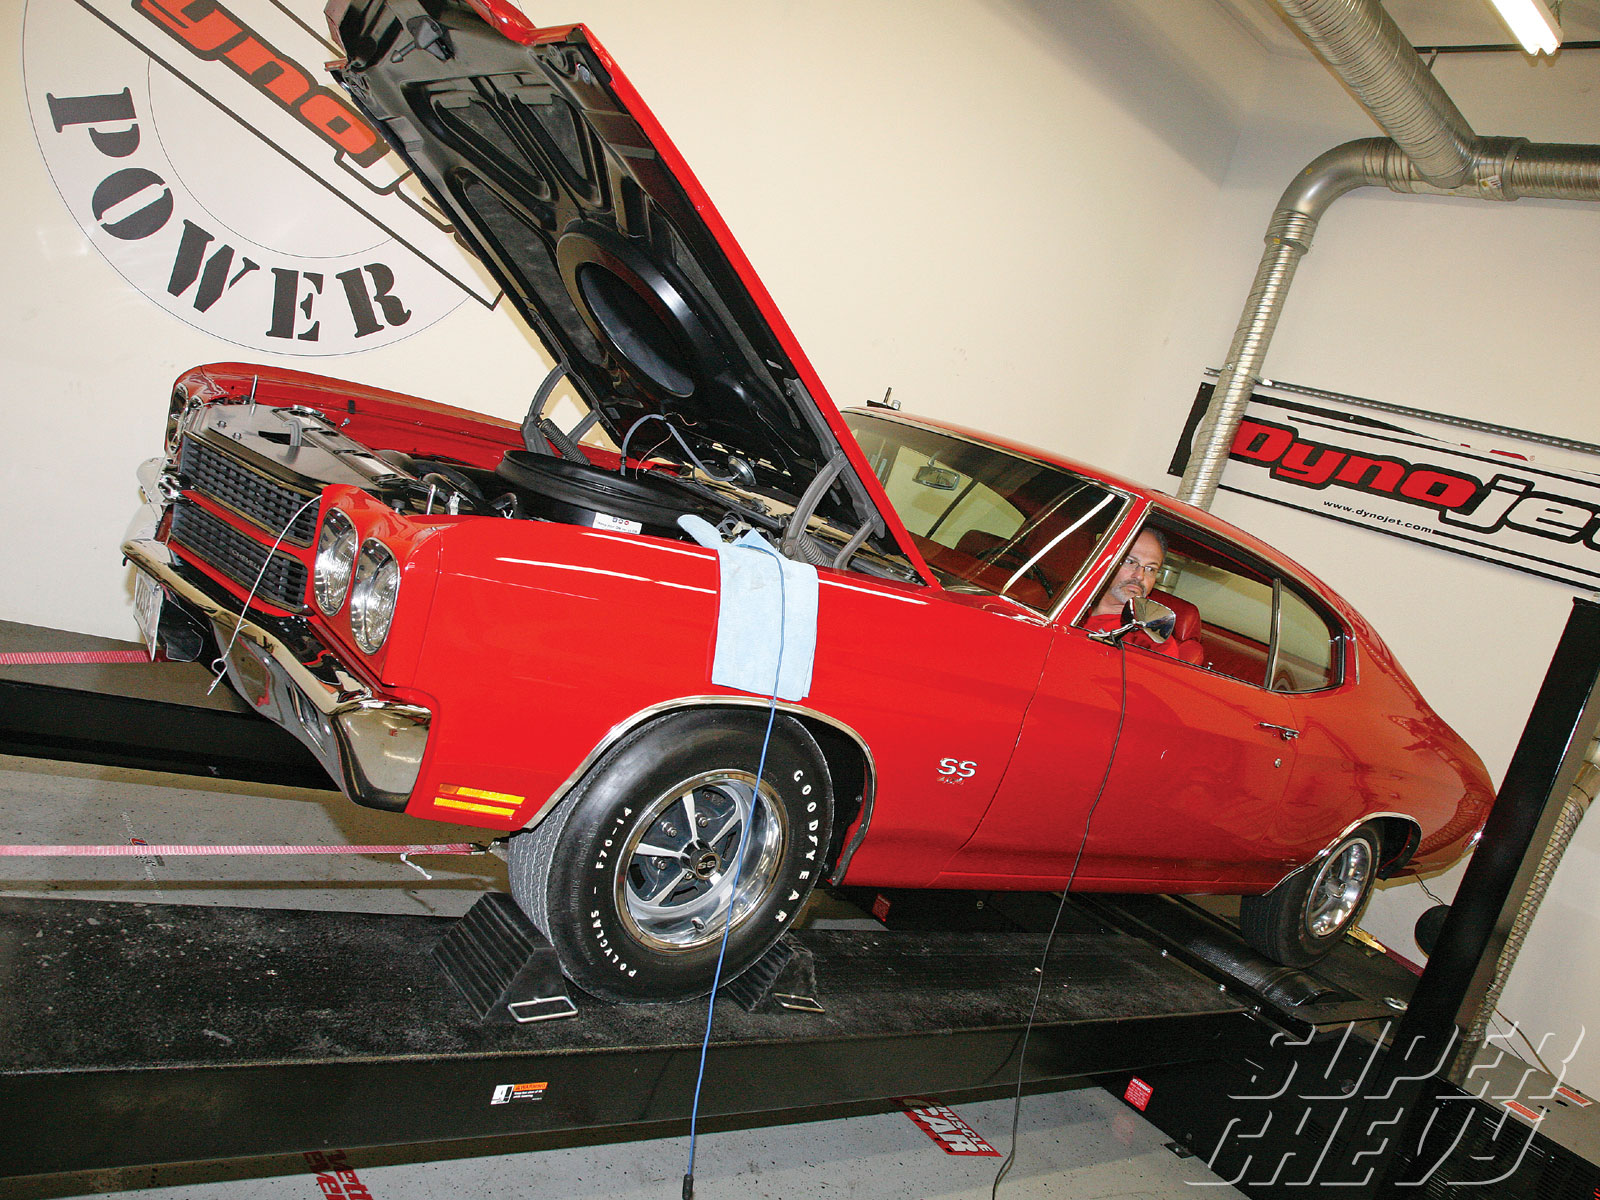 Sucp 1102 03 O Chevrolet Muscle Car Dyno Wars 1970 Ls6 Chevelle